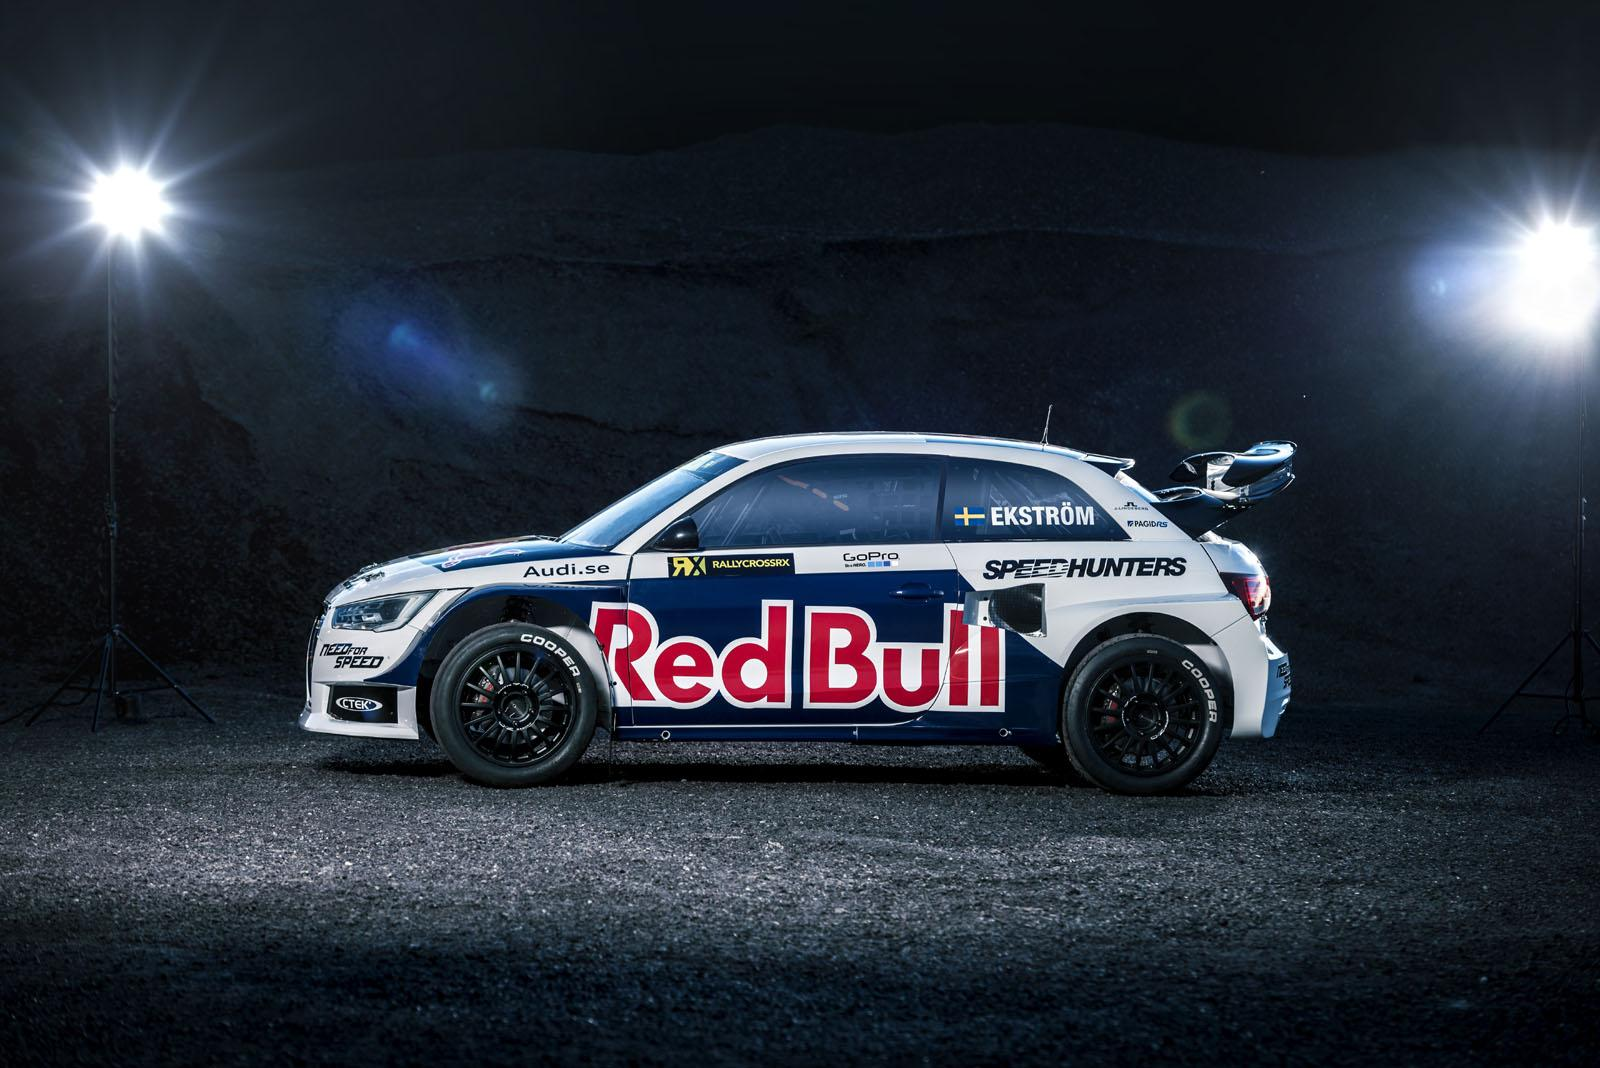 audi s1 ready to rallycross in red bull livery autoevolution. Black Bedroom Furniture Sets. Home Design Ideas